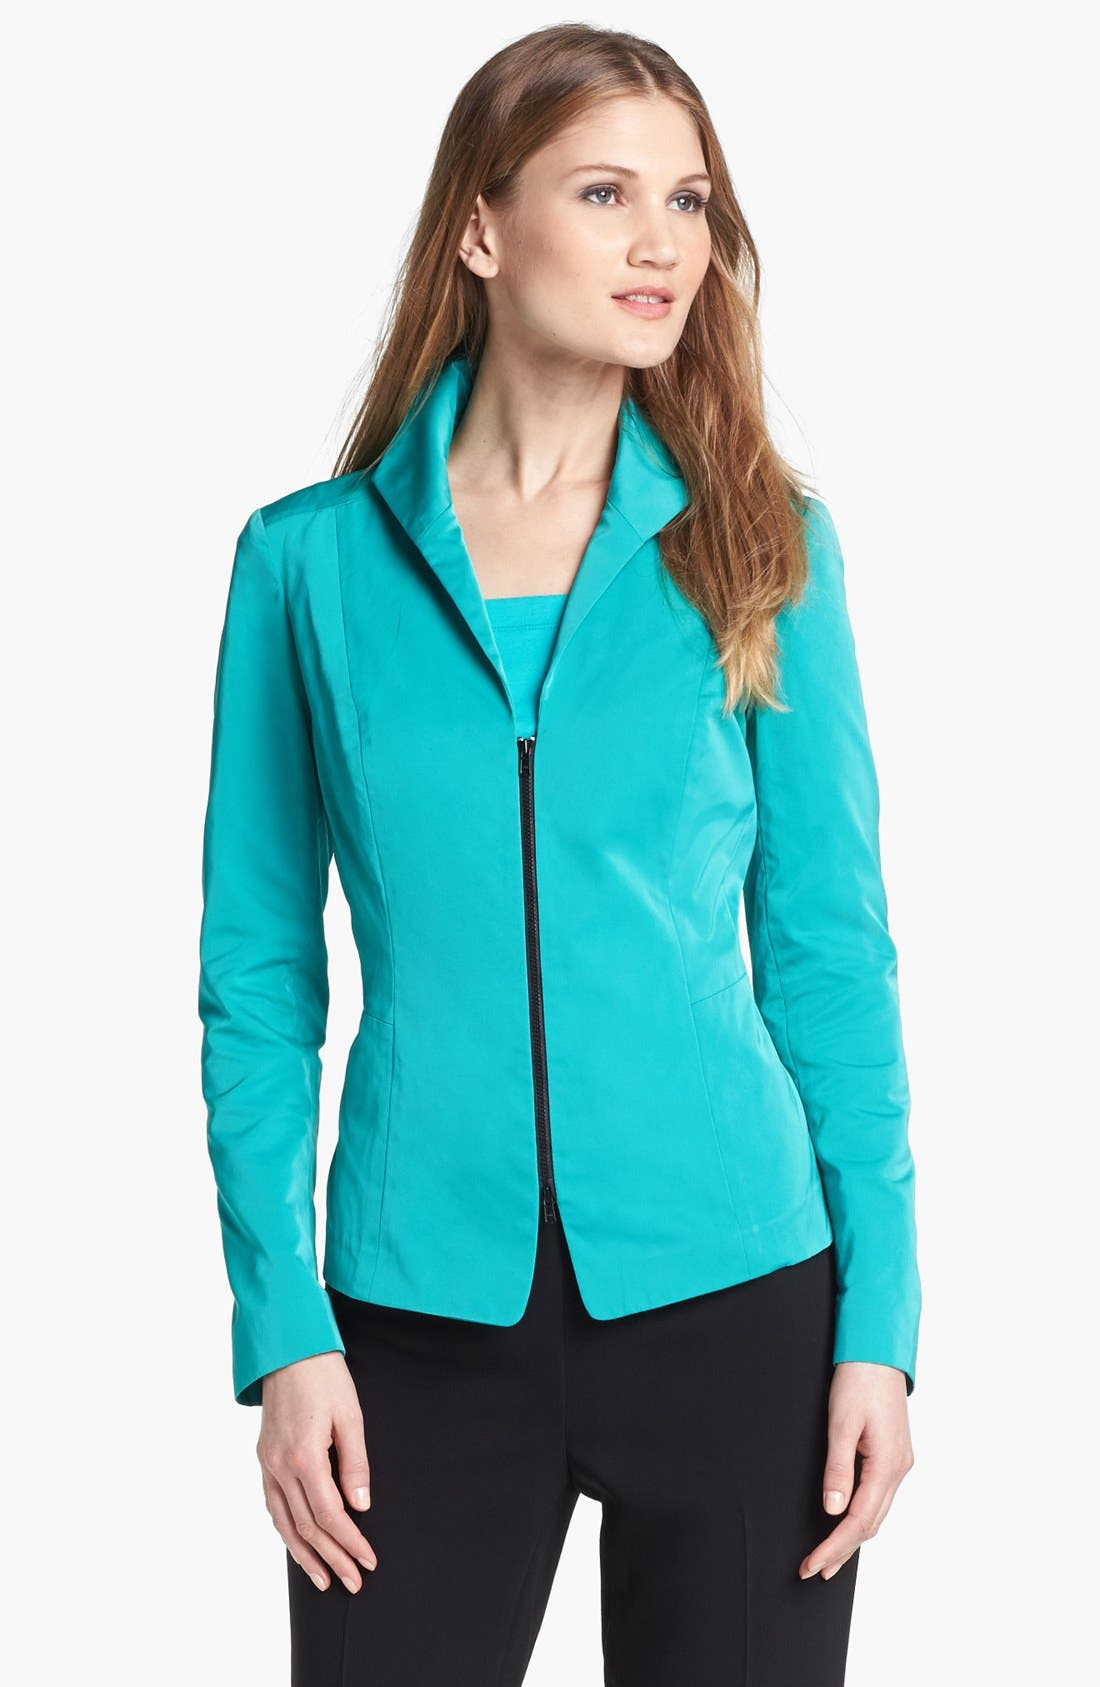 Alternate Image 1 Selected - Lafayette 148 New York 'Raleigh - Couture Cloth' Jacket